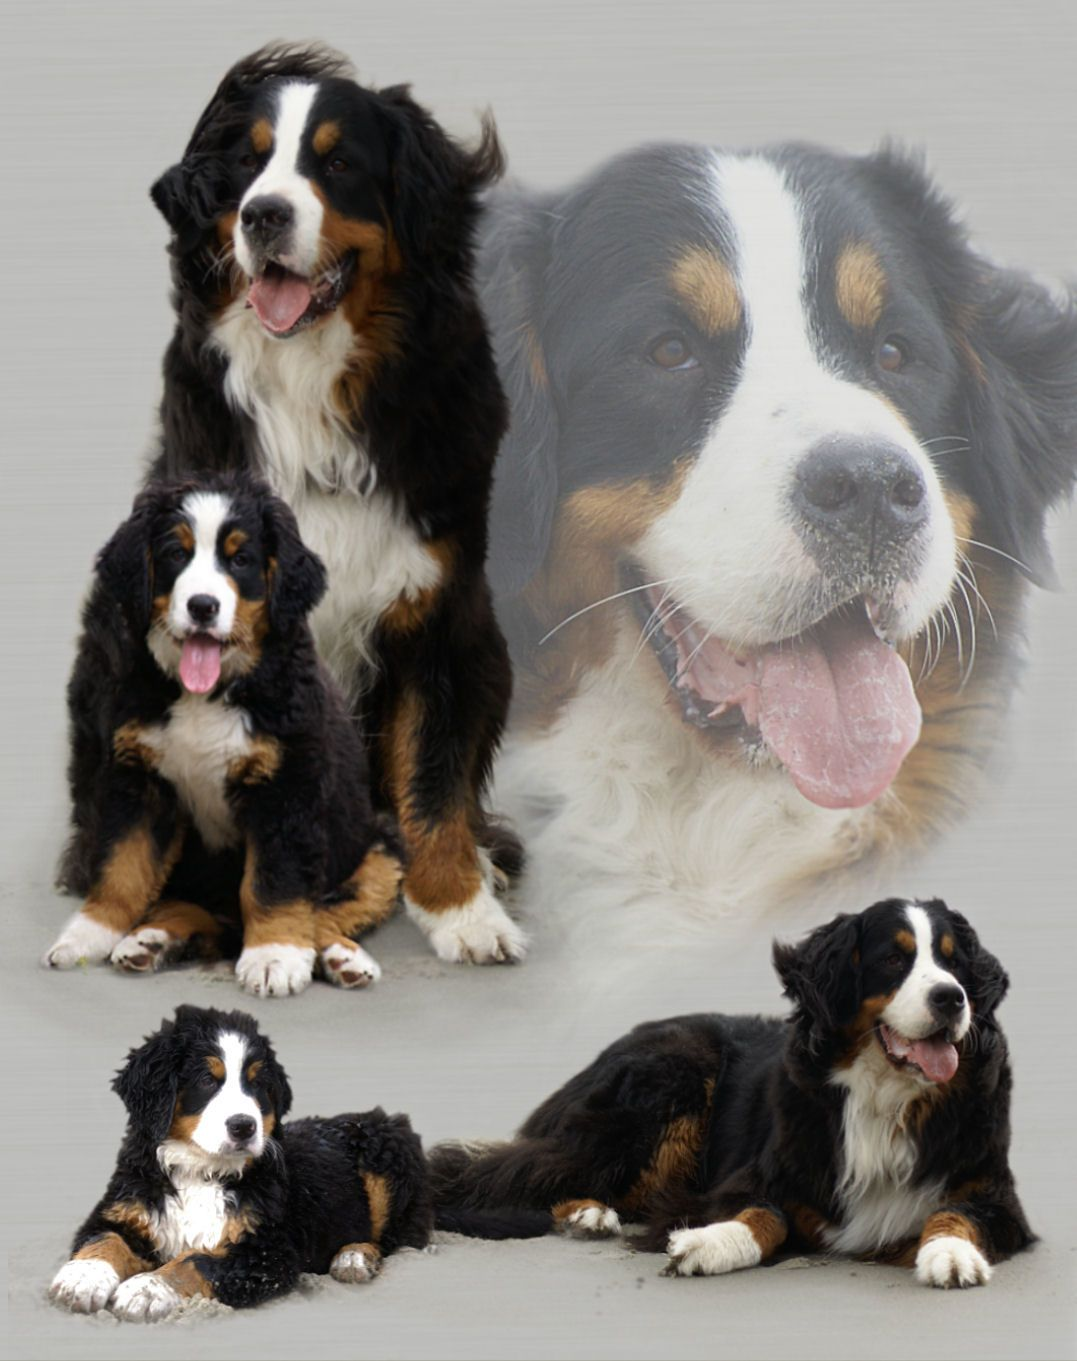 My Gina... ( wish my pro photographer husband would take a portrait like this of our Berner!)